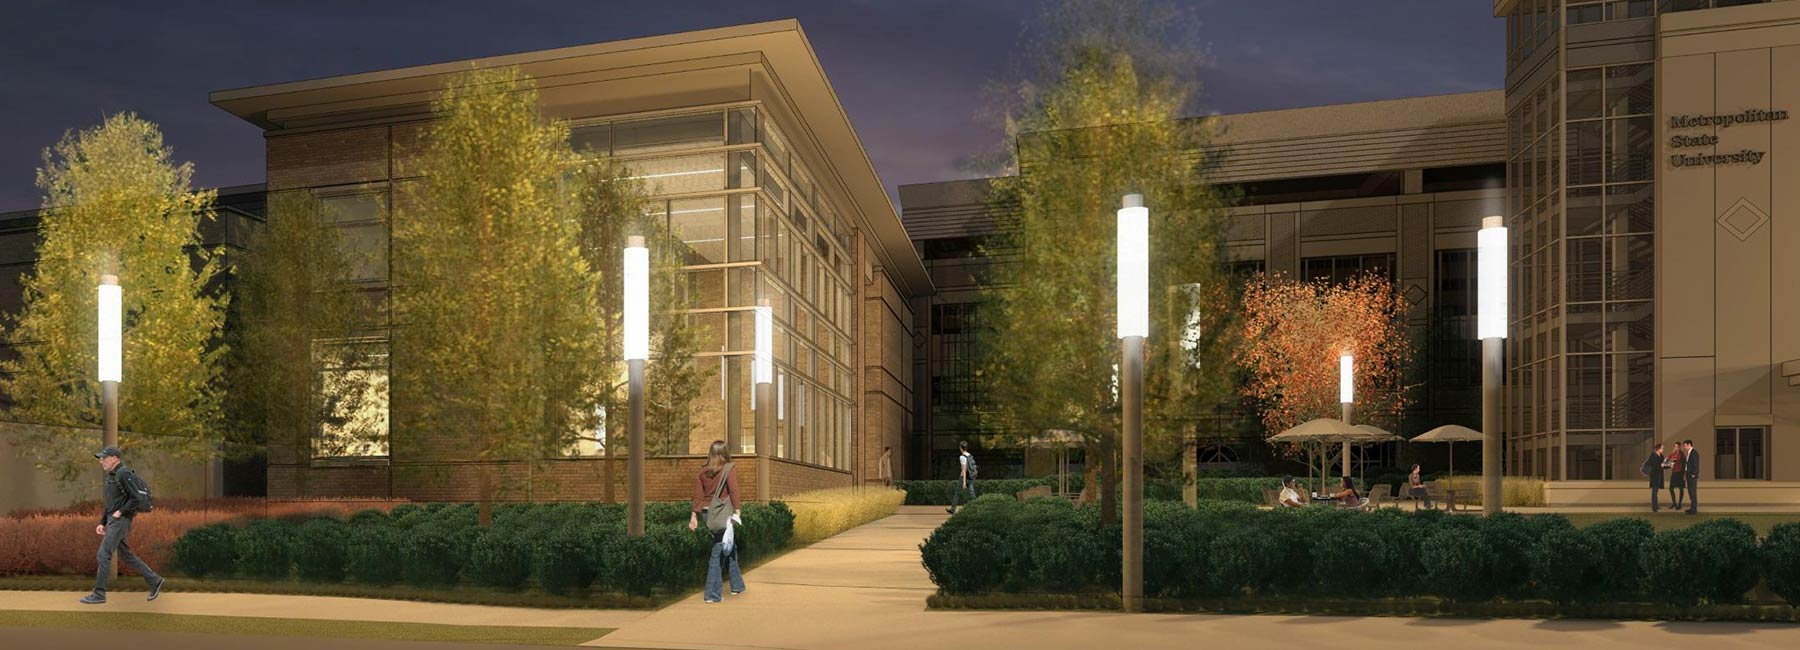 Commissioning & Energy Services, Education Engineering - Metro State University St. Paul, MN